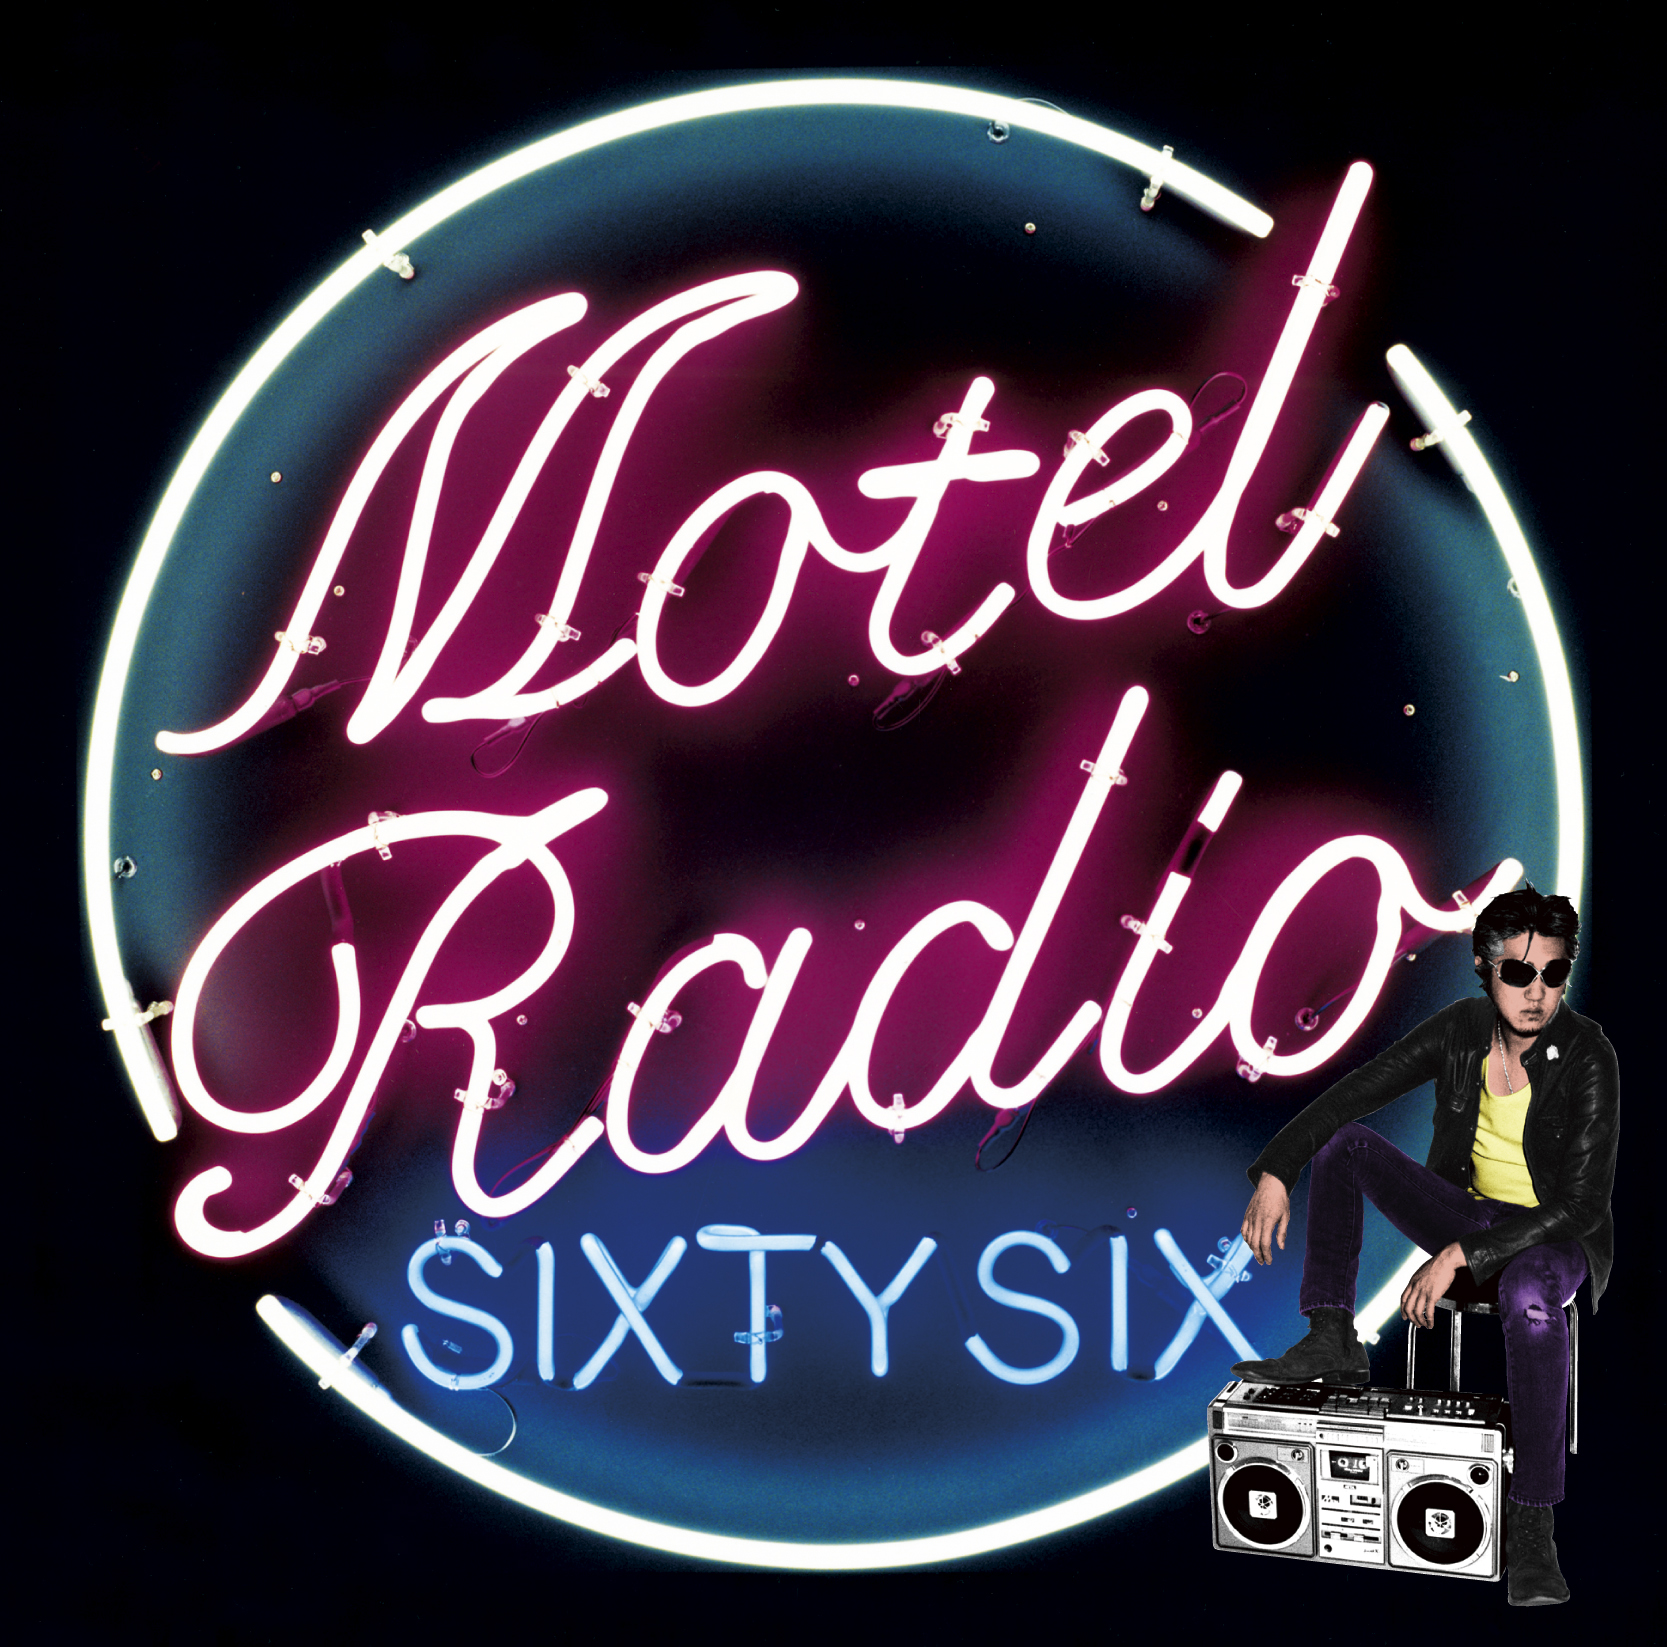 The Birthday 「Motel Radio SIXTY SIX」